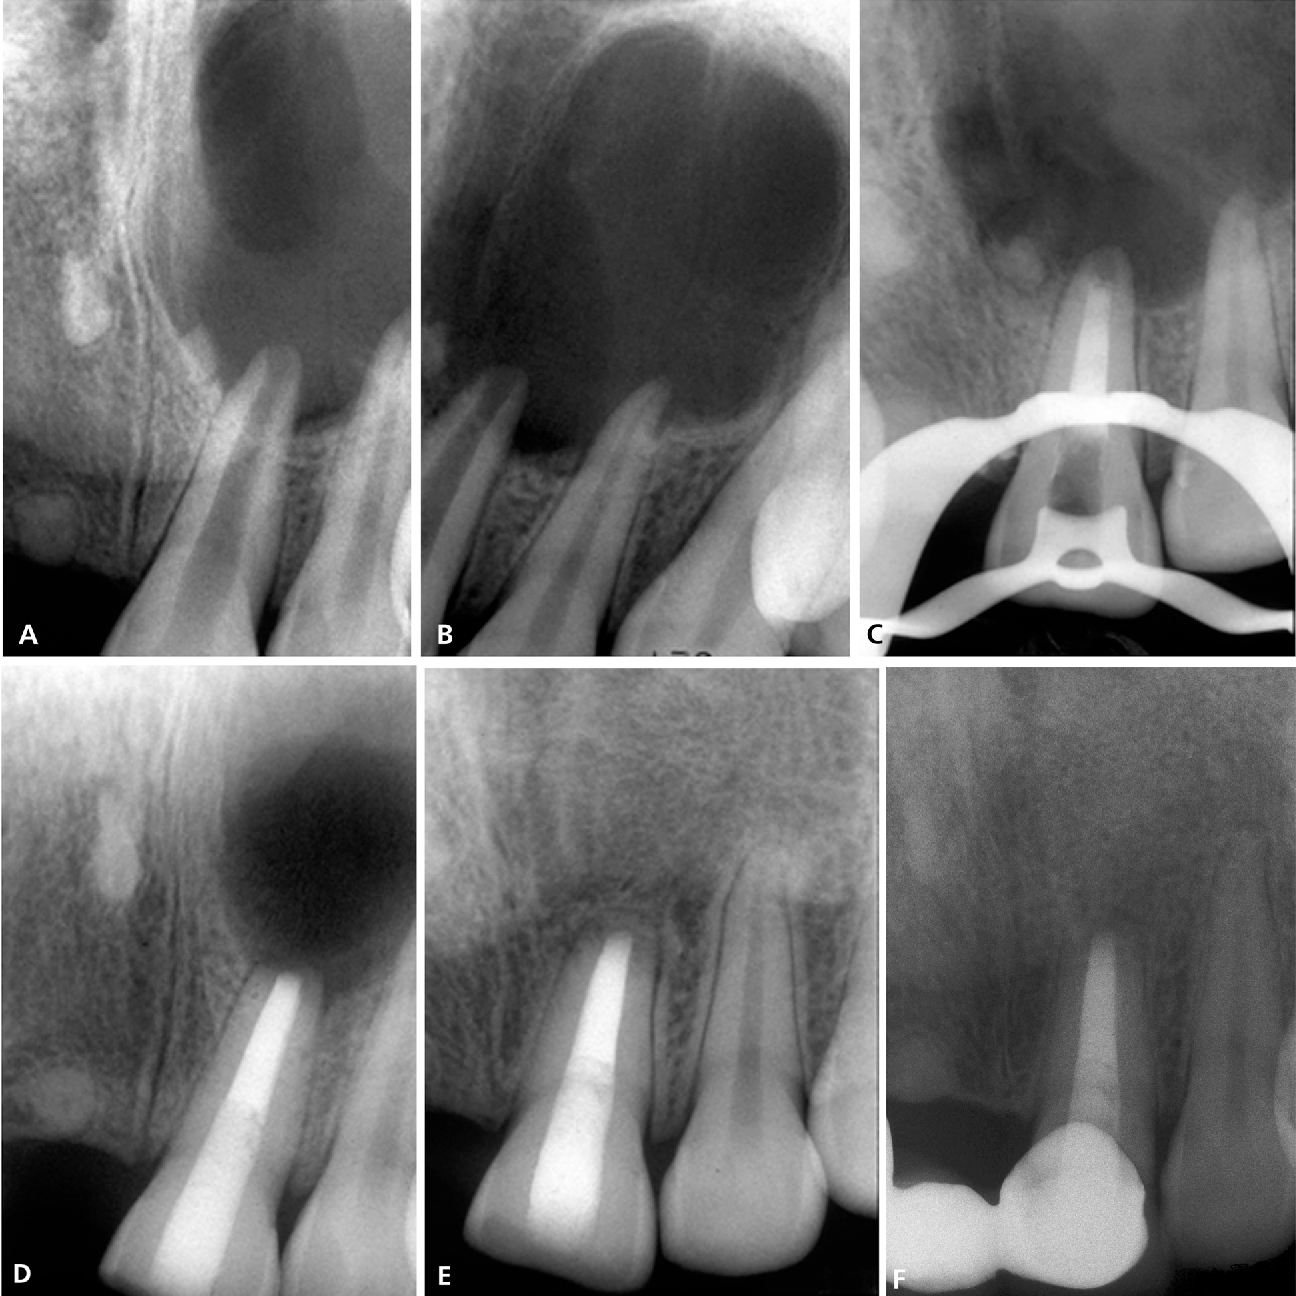 Endodontic treatment options after unsuccessful initial root